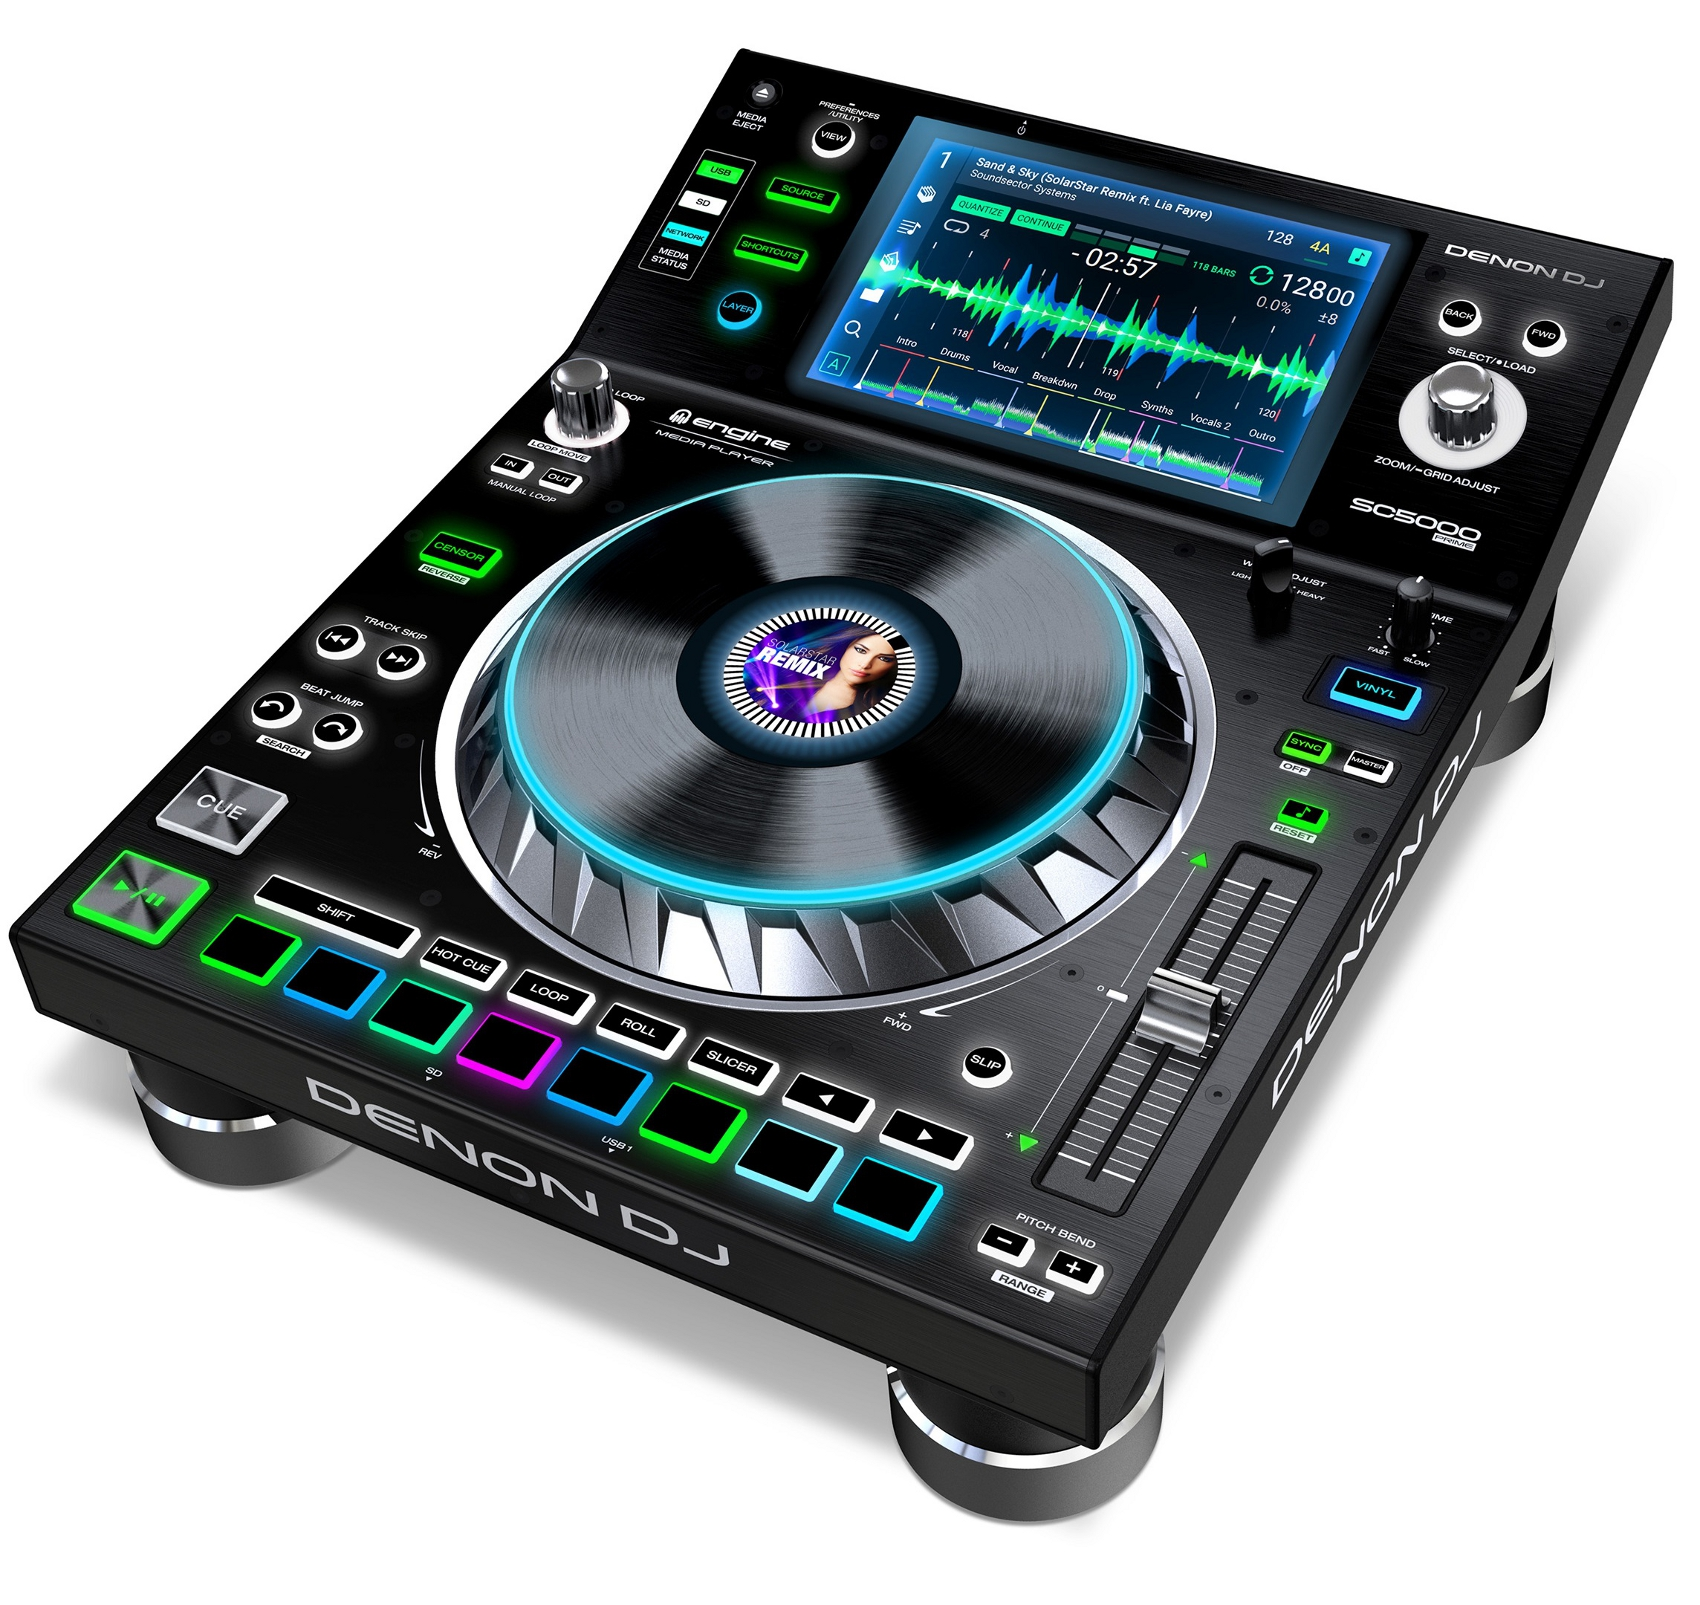 DENON DJ DC5000 PRIME LETTORE MEDIA PLAYER PER DJ USB SD CON DISPLAY HD 7 MULTI-TOUCH 1